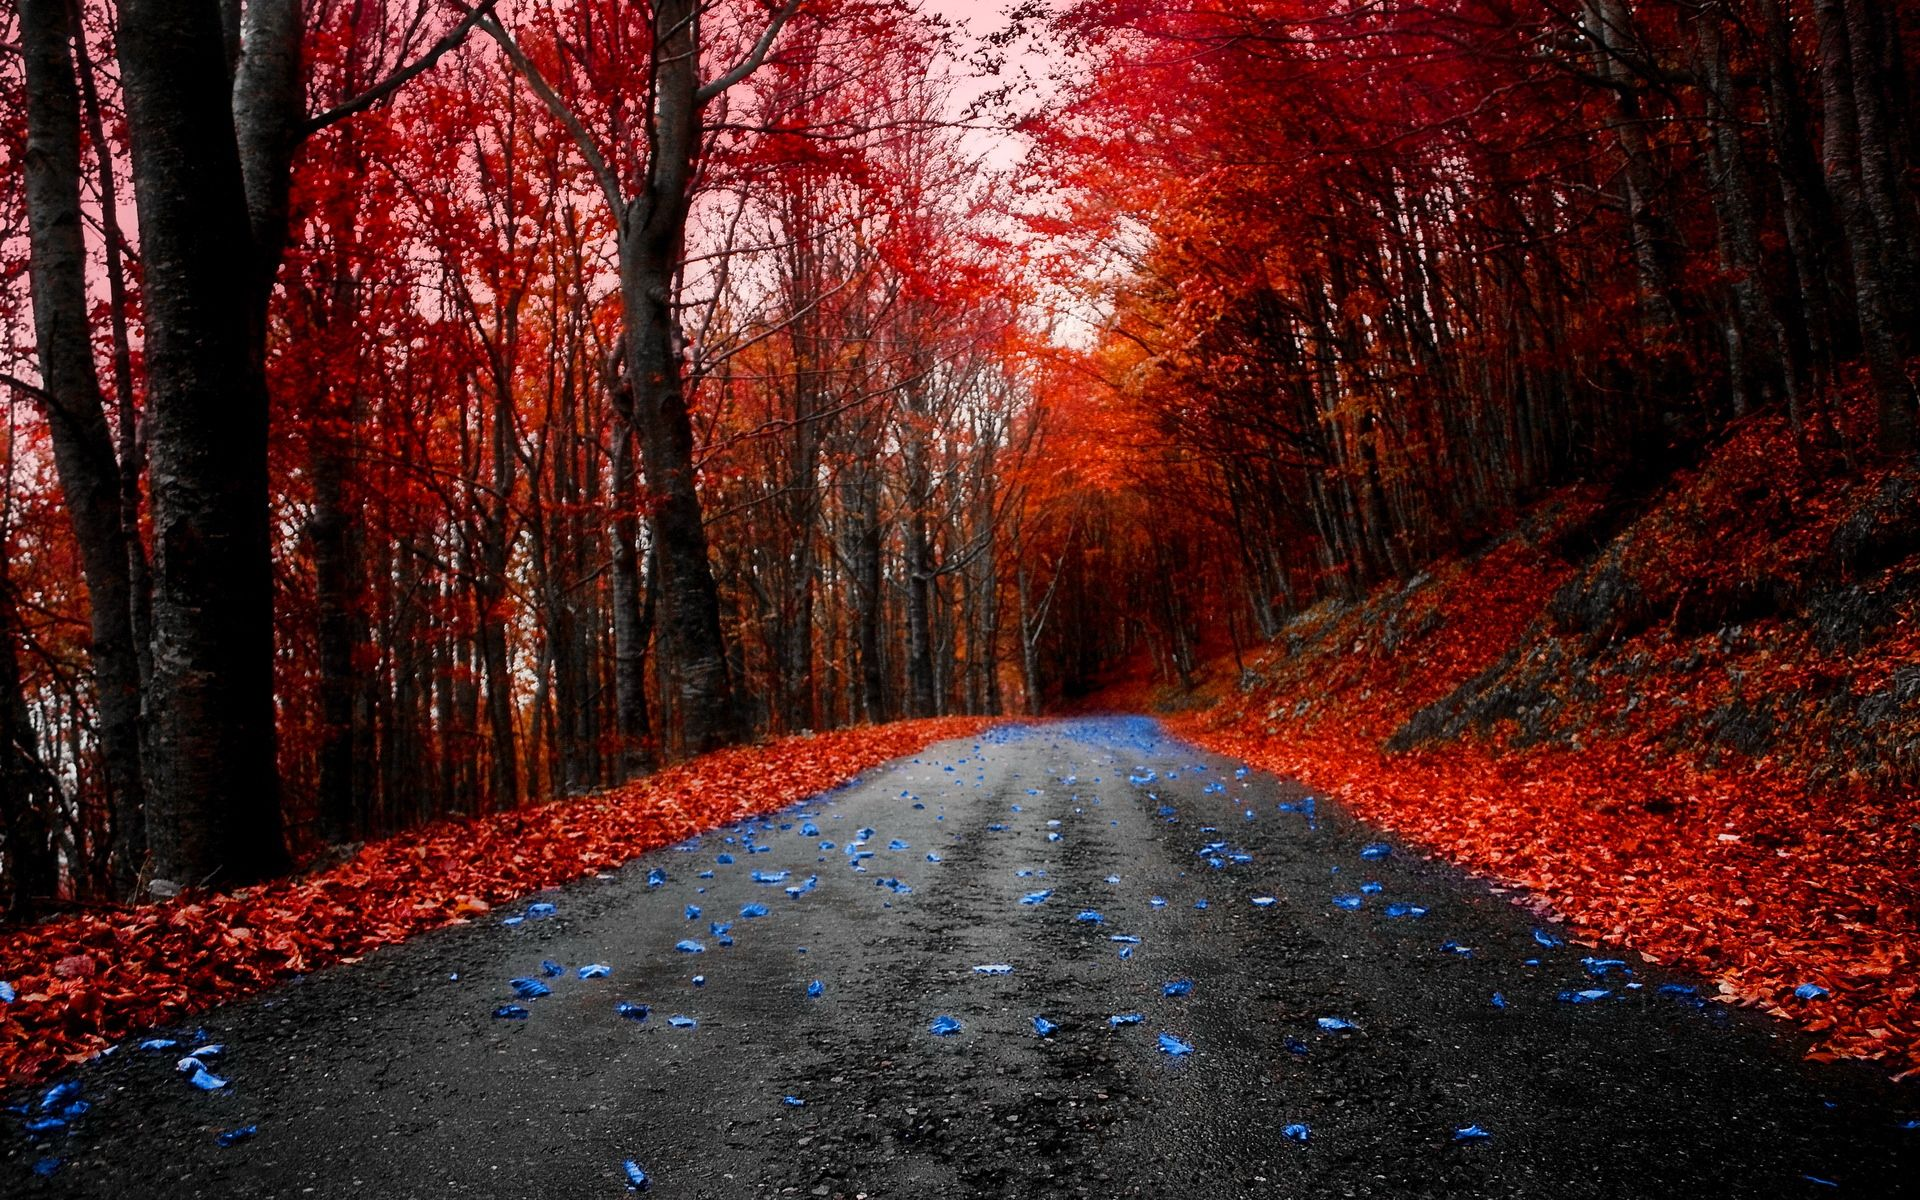 HD Red Maple Road Wallpaper Download Free 90000 Red